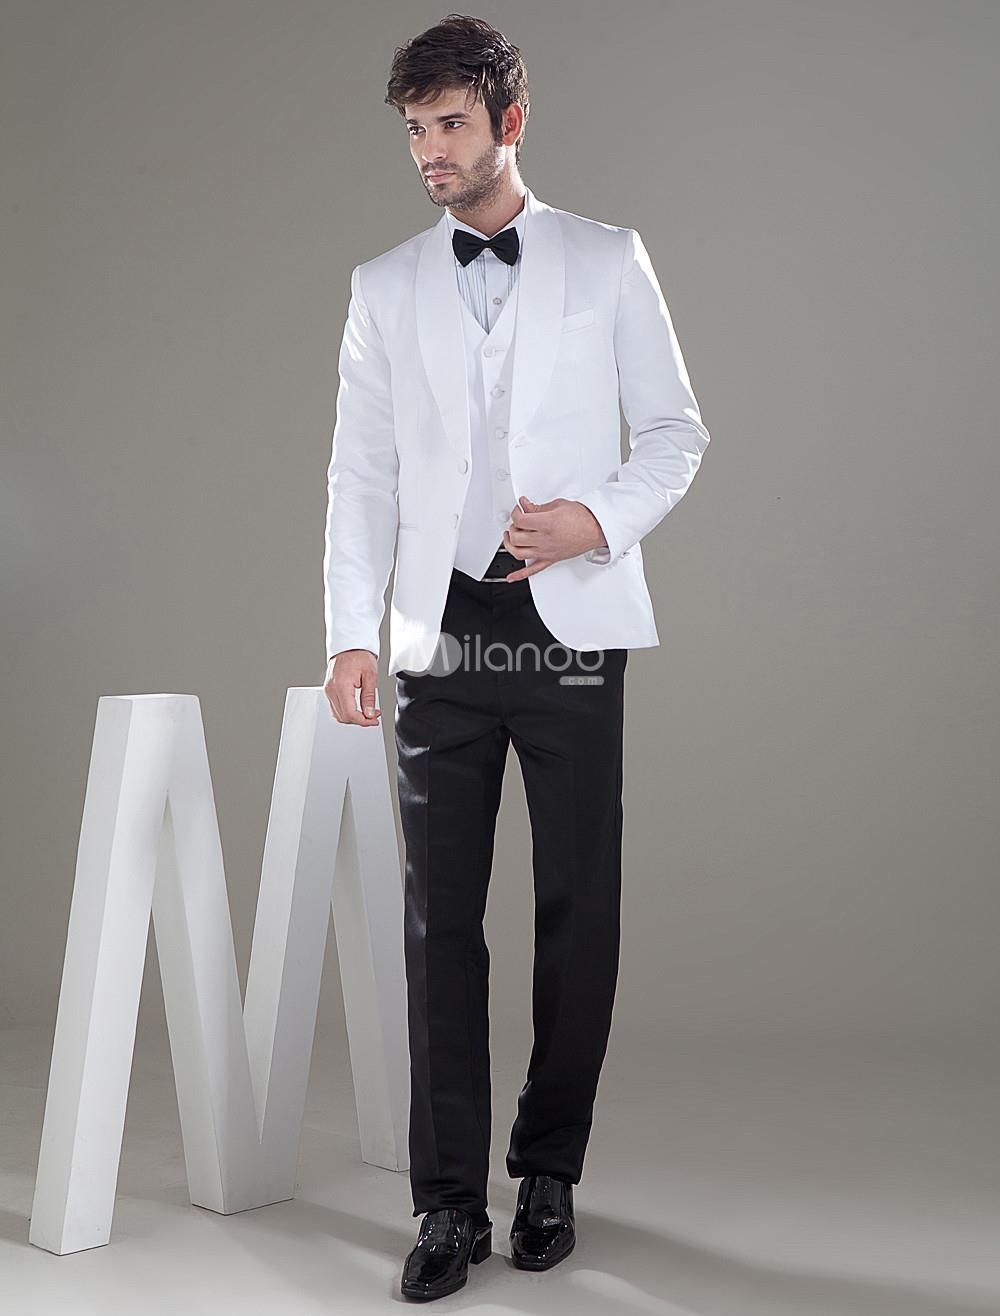 match & flirt with singles in tuxedo 6 ways to meet gay men zoosk let's you browse pictures of local singles, flirt online and chat with people tuxedo or obscene amount of hair gel and/or.